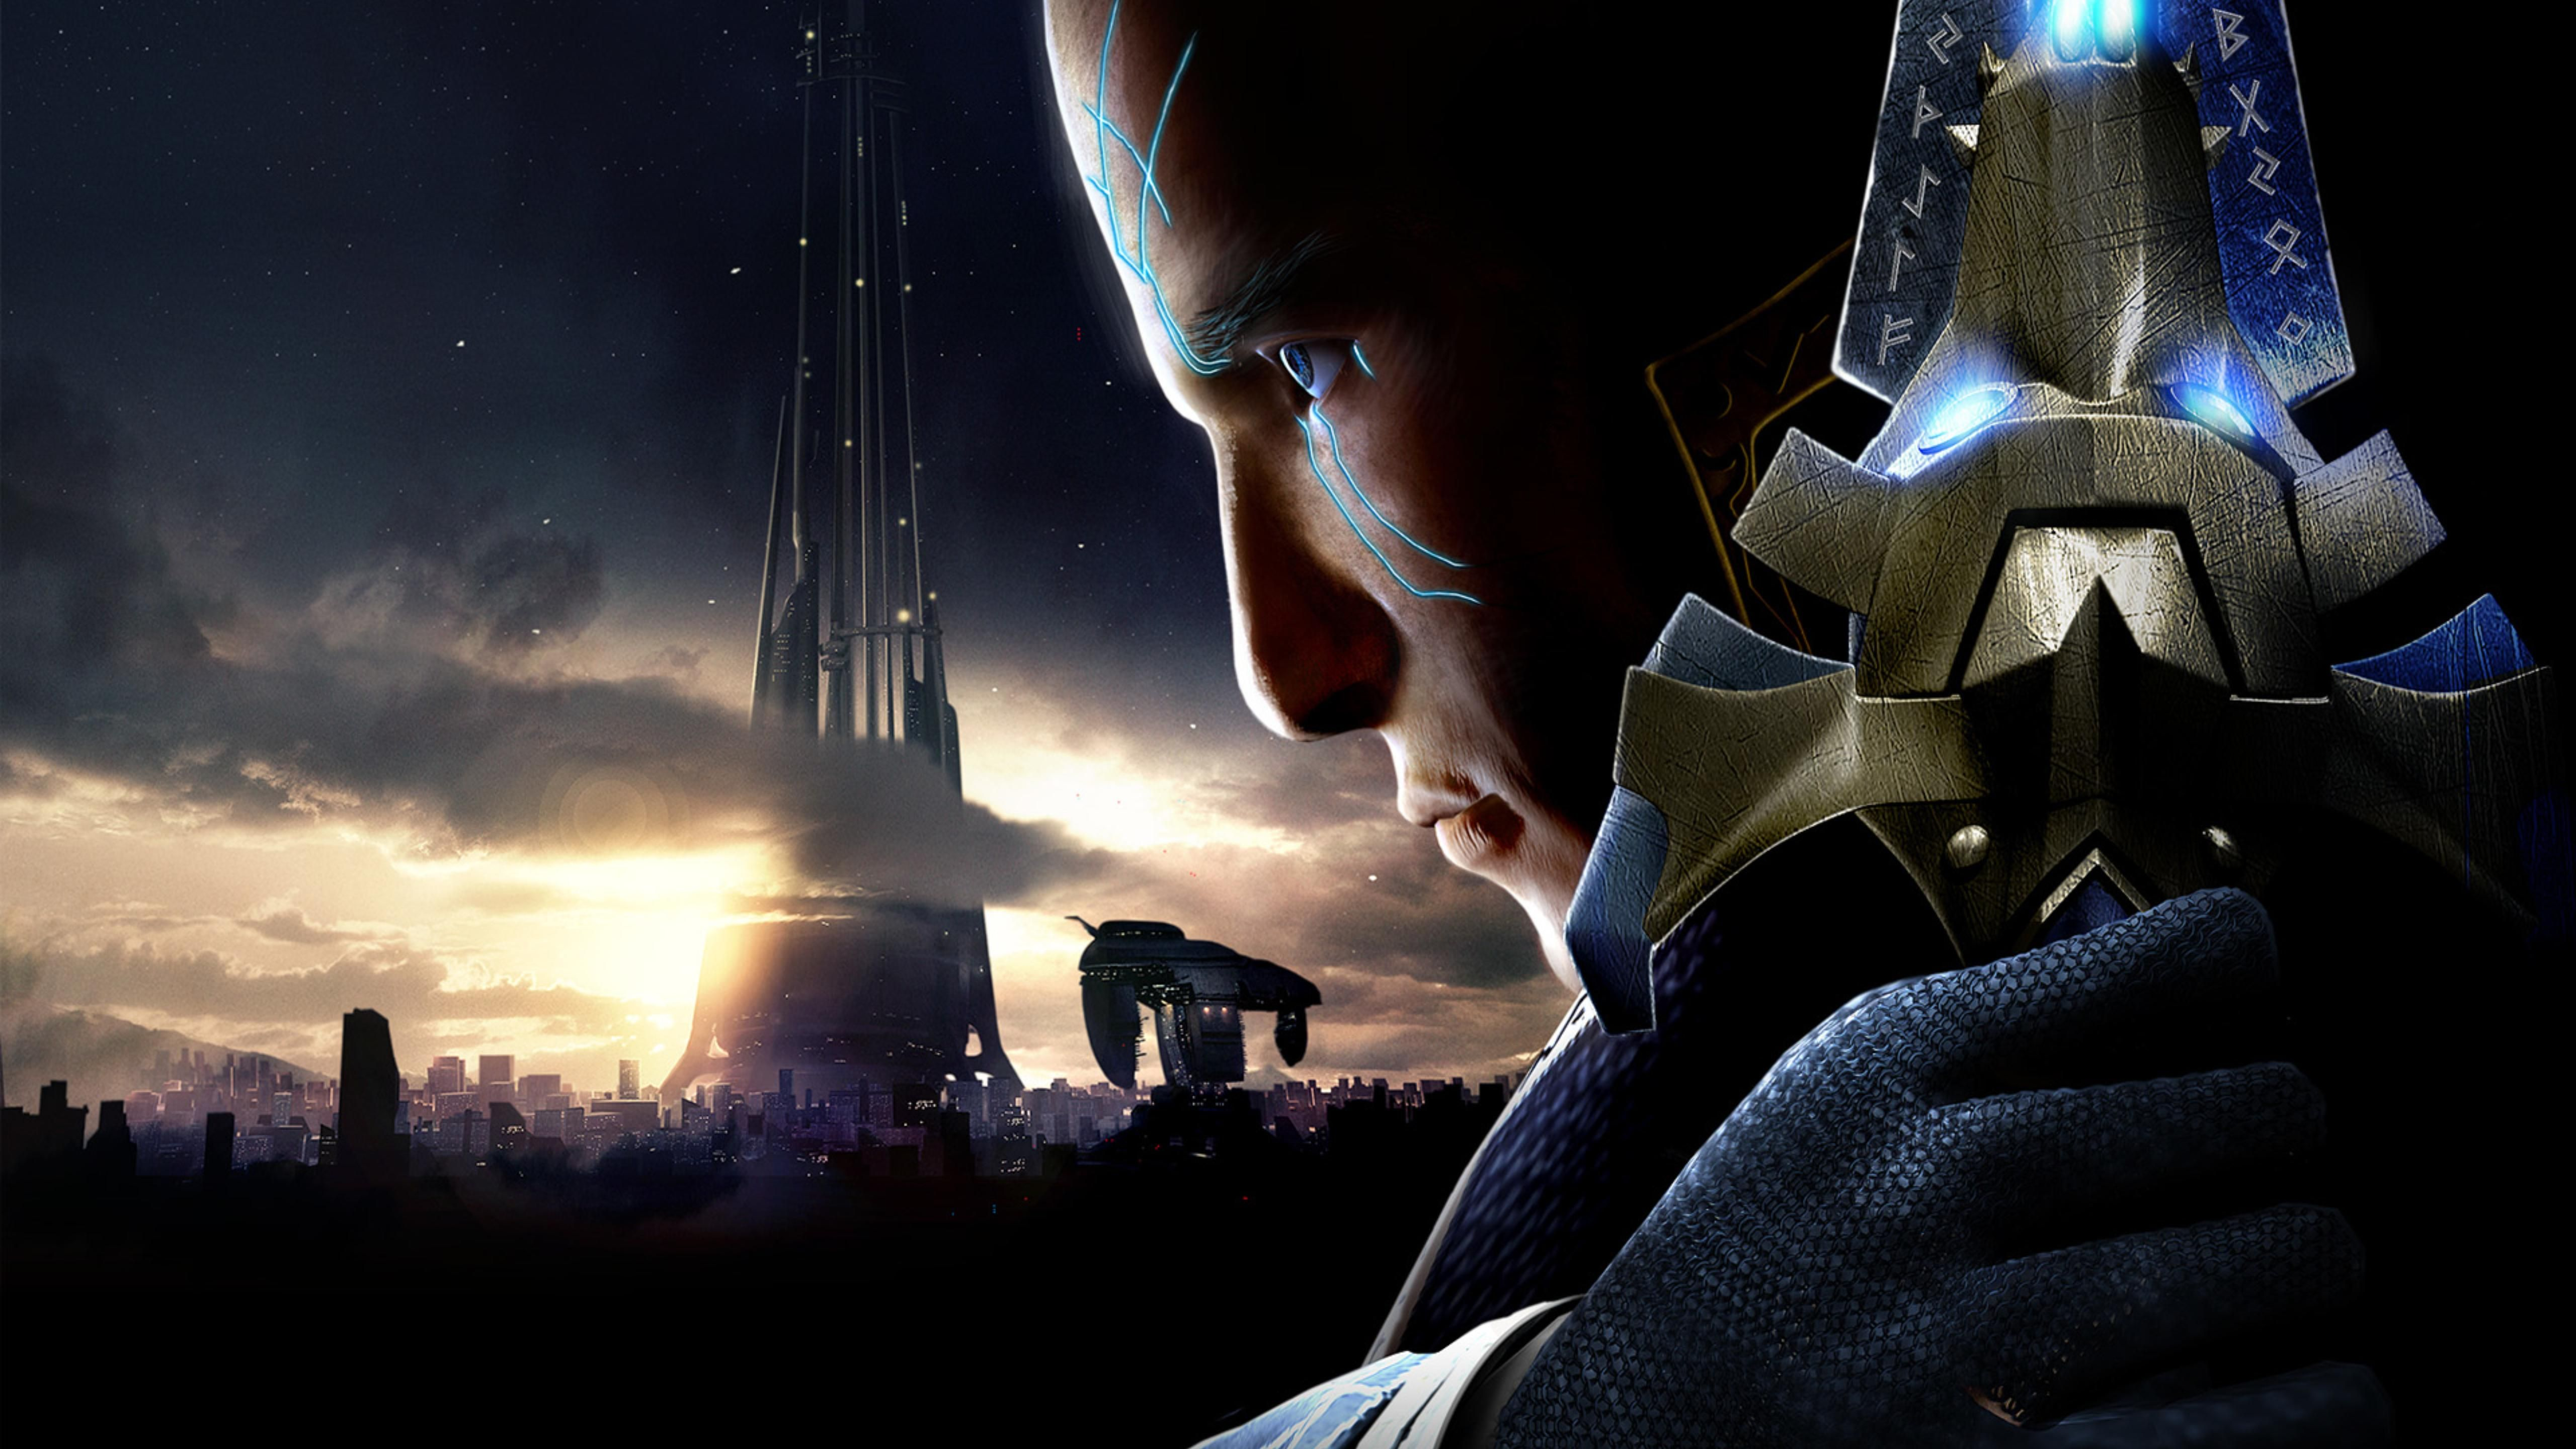 Too Human (With images) Pc games wallpapers, Free video